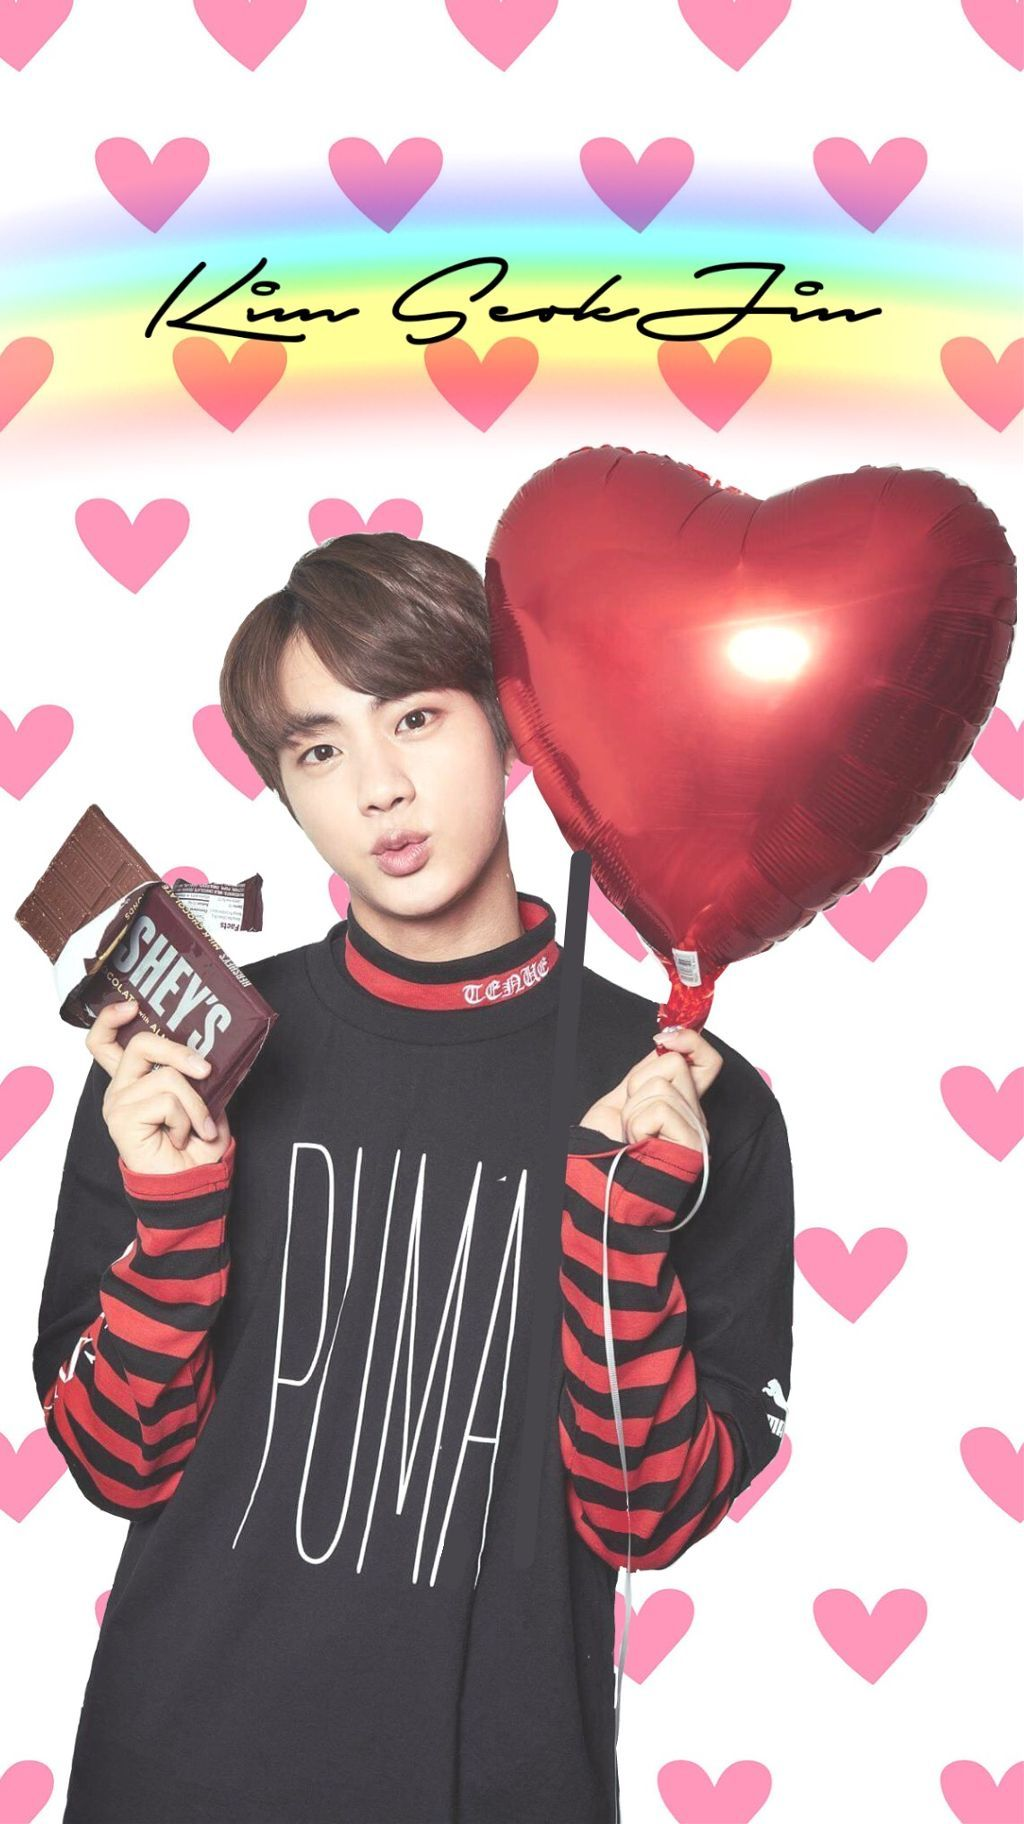 DO NOT EDIT THIS PICTURE. bts jin kimseokjin wallpaper…